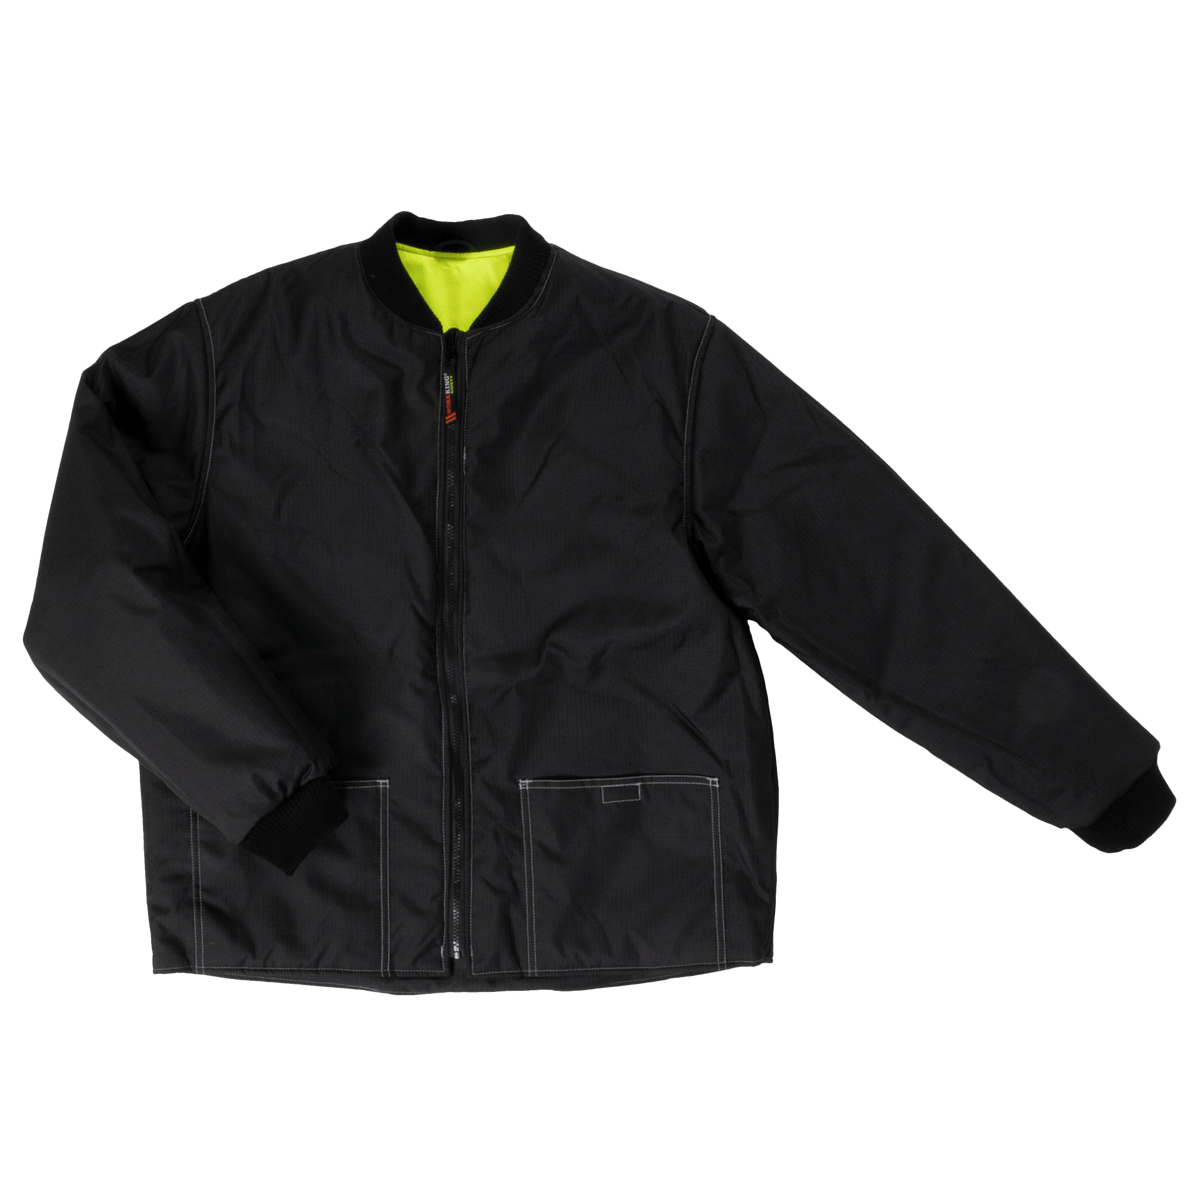 Tough Duck SJ29 Reversible Insulated Safety Jacket | Yellow | Sizes XS-5XL Hi Vis Work Wear - Cleanflow